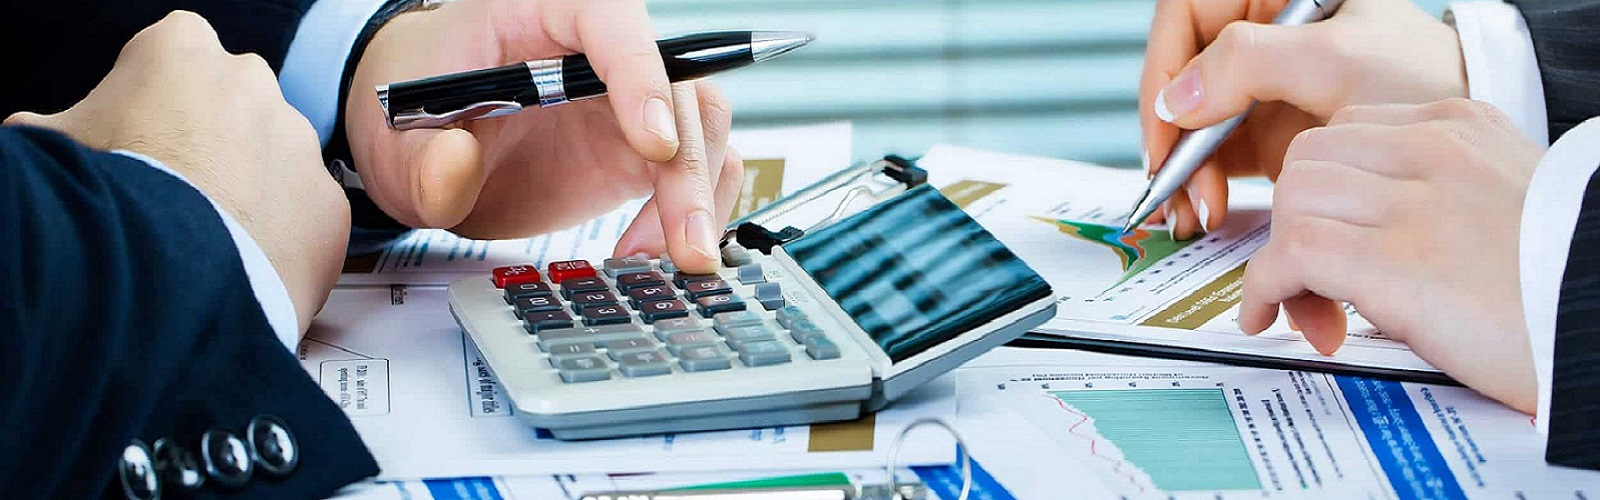 Accountancy Outsourcing Services UK: Signs Indicating Your Accounting Firm Needs Outsourced Accountancy Services